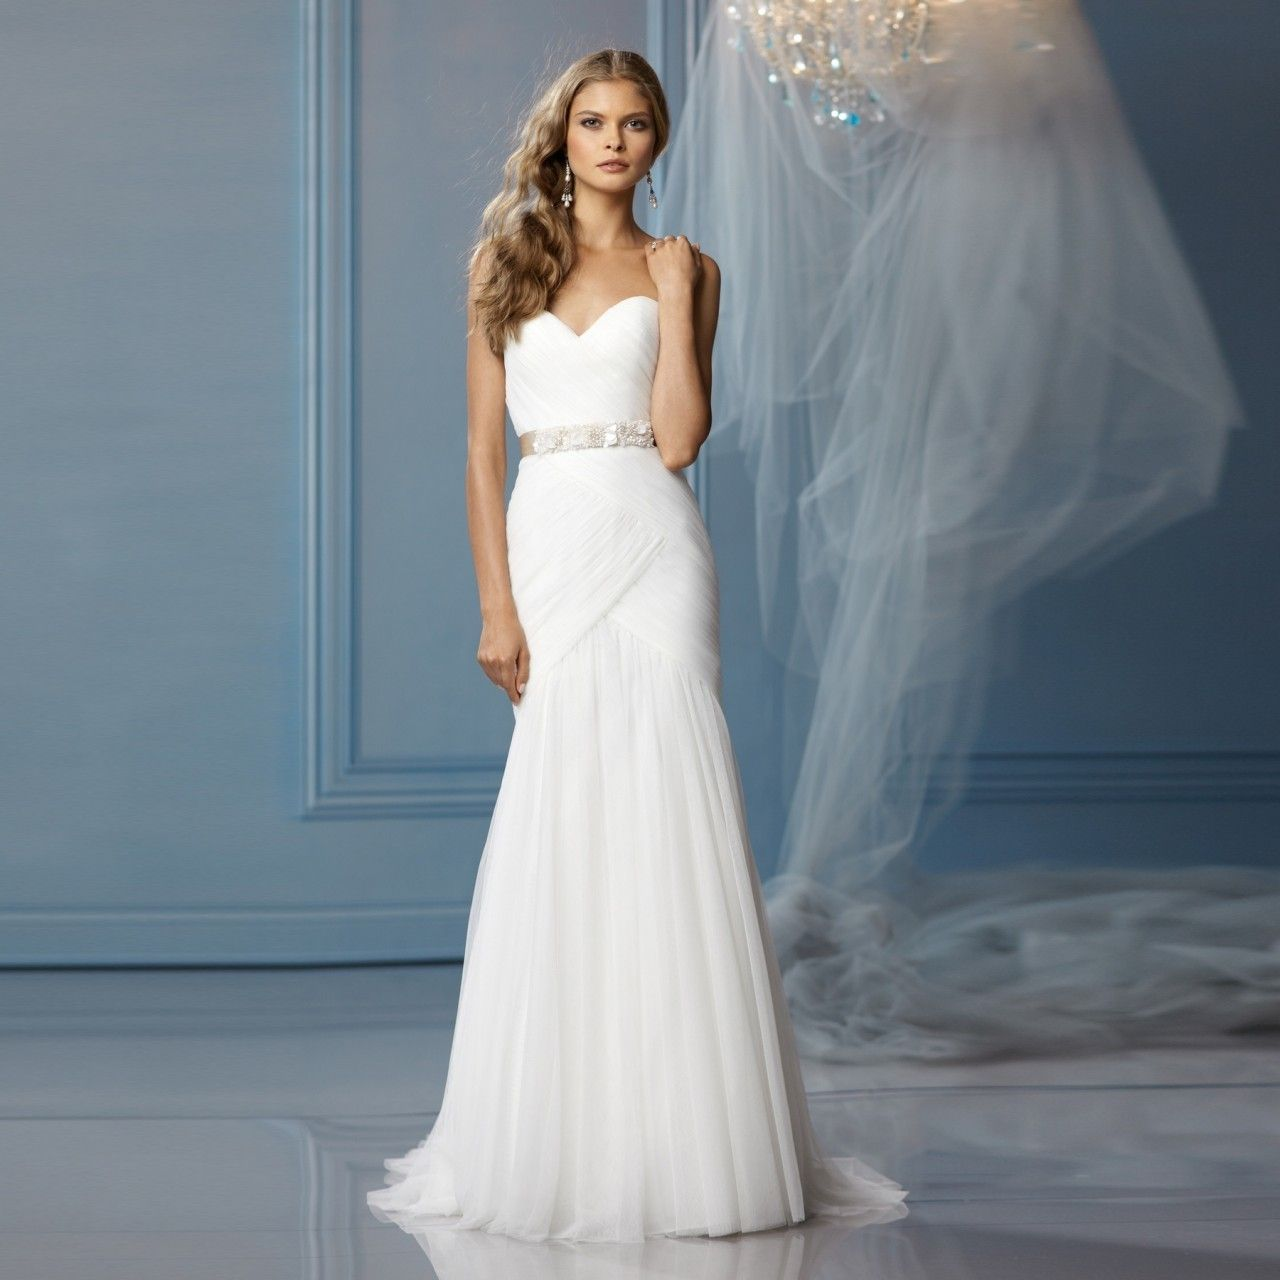 Fashionably Yours - CYPRUS Bridal Gown By Wtoo - Arriving End of ...